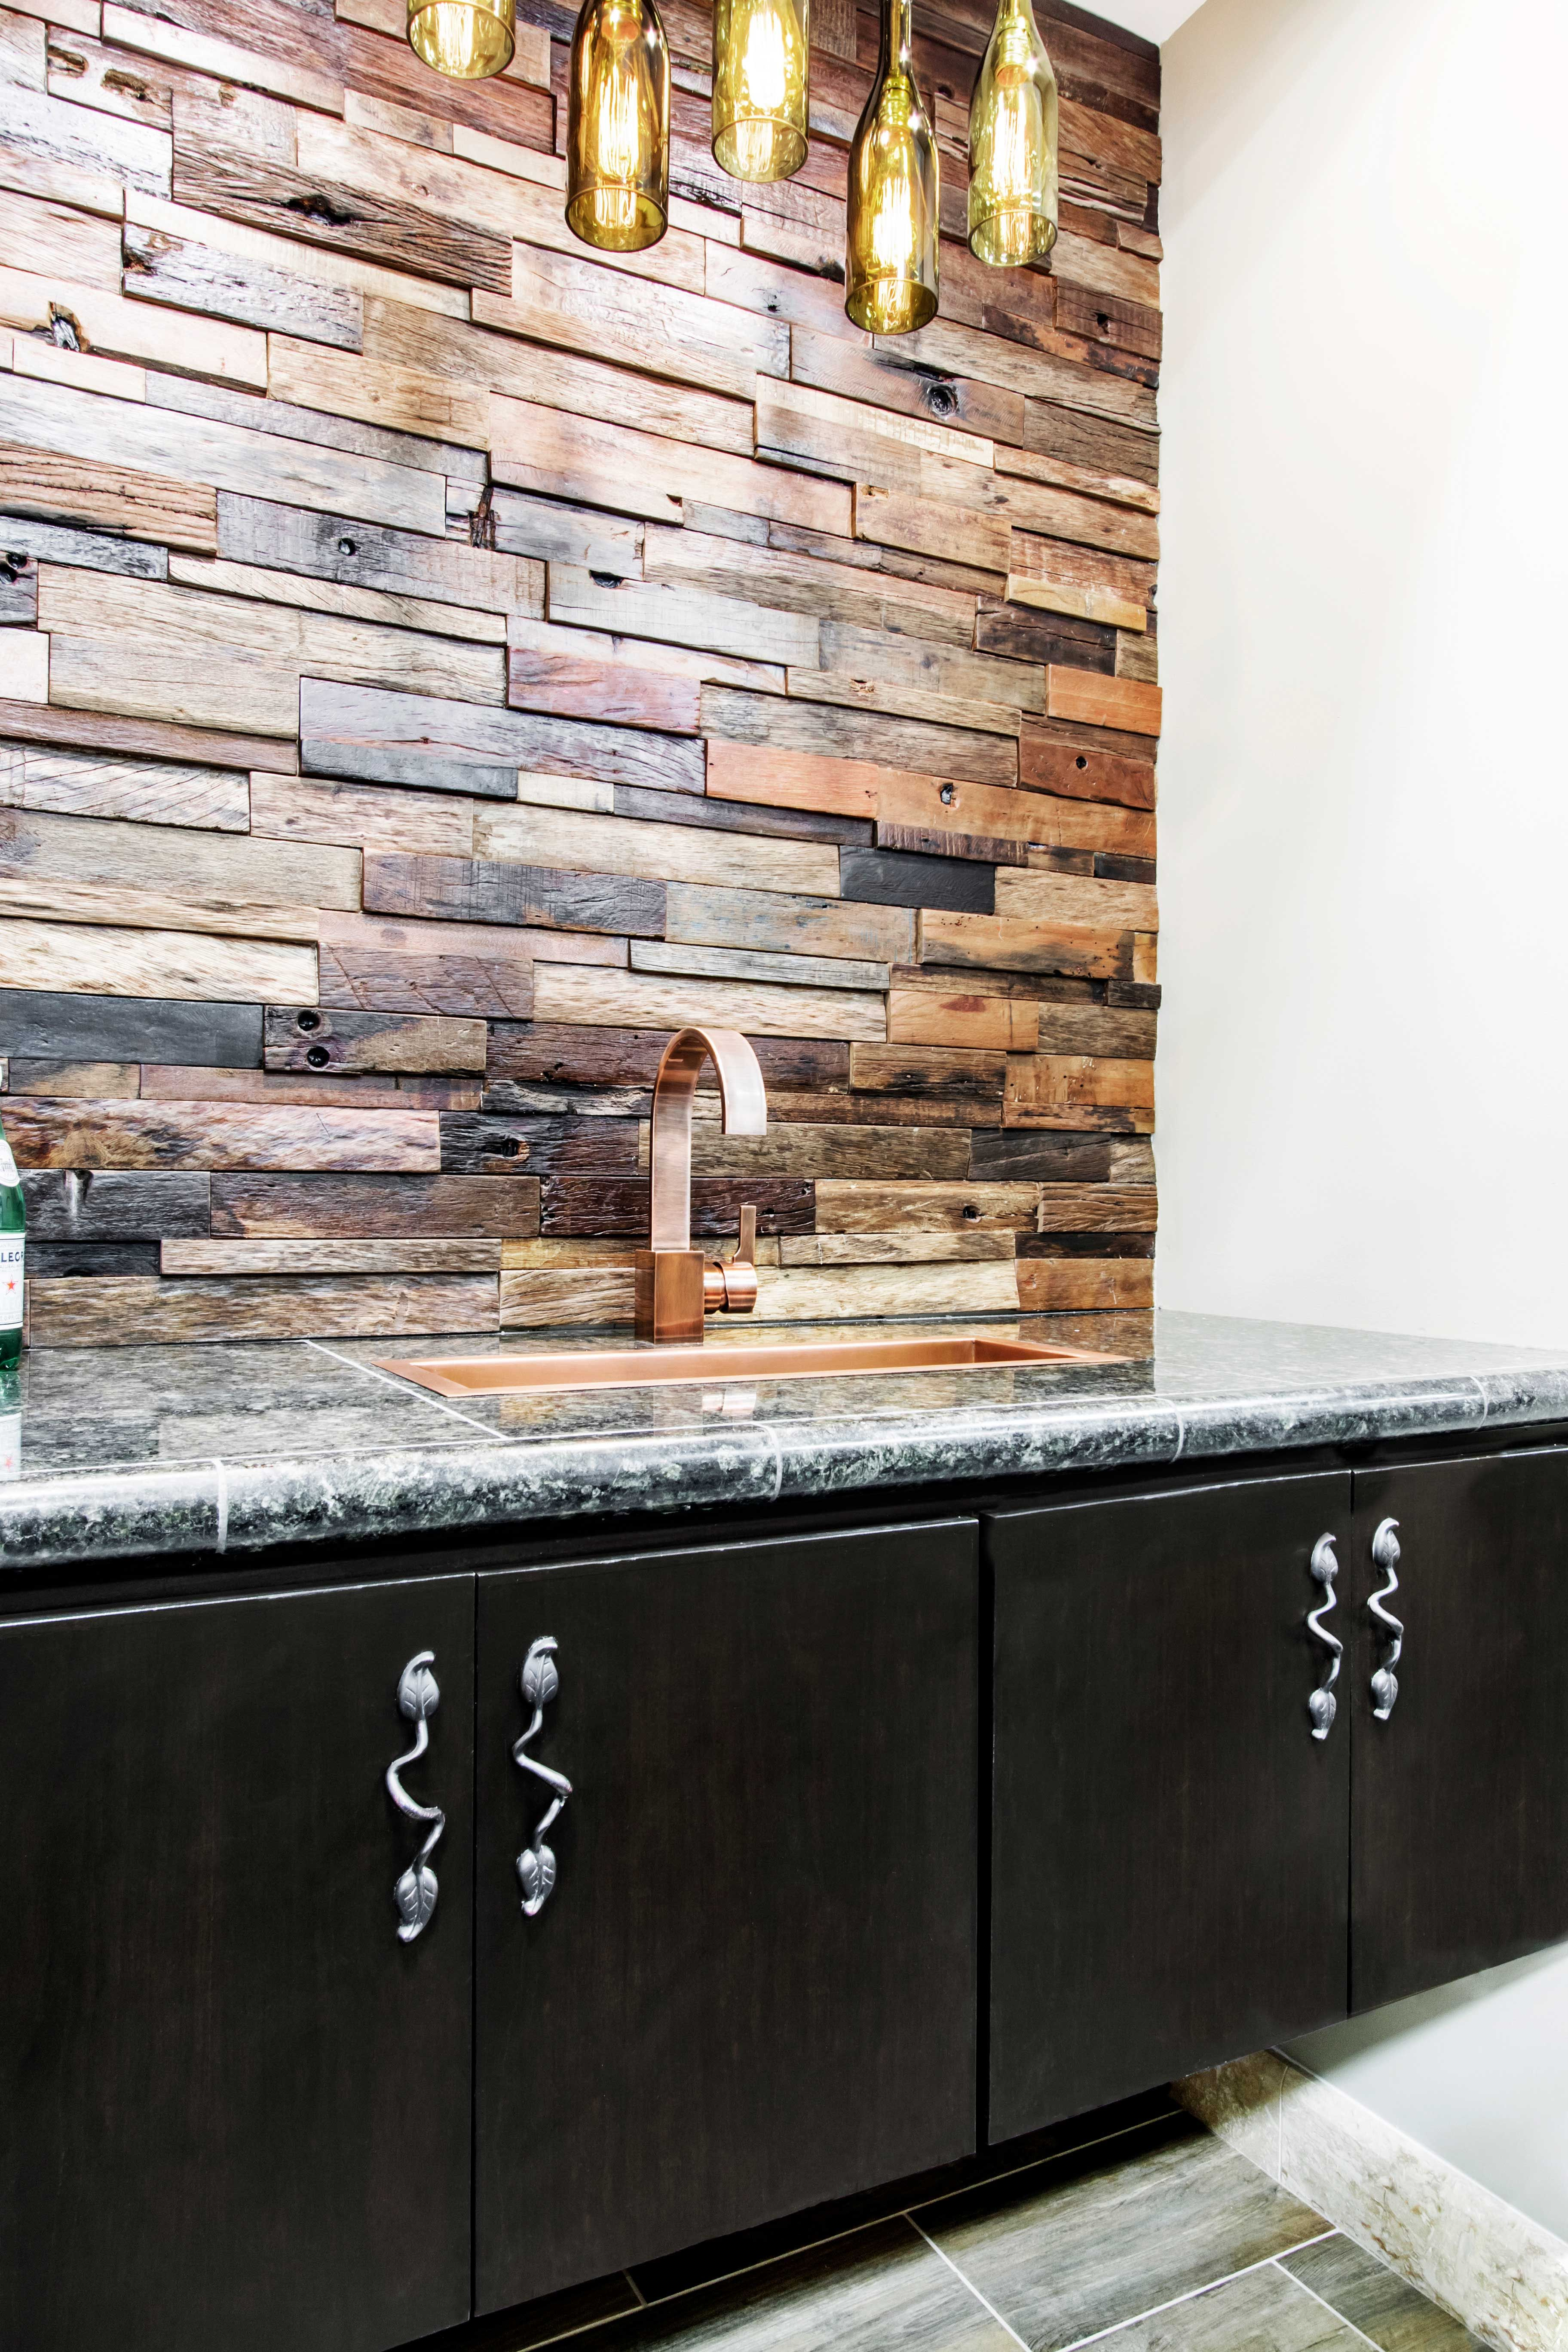 - This Wood Tile Home Bar Backsplash Idea Is Uniquely Crafted From